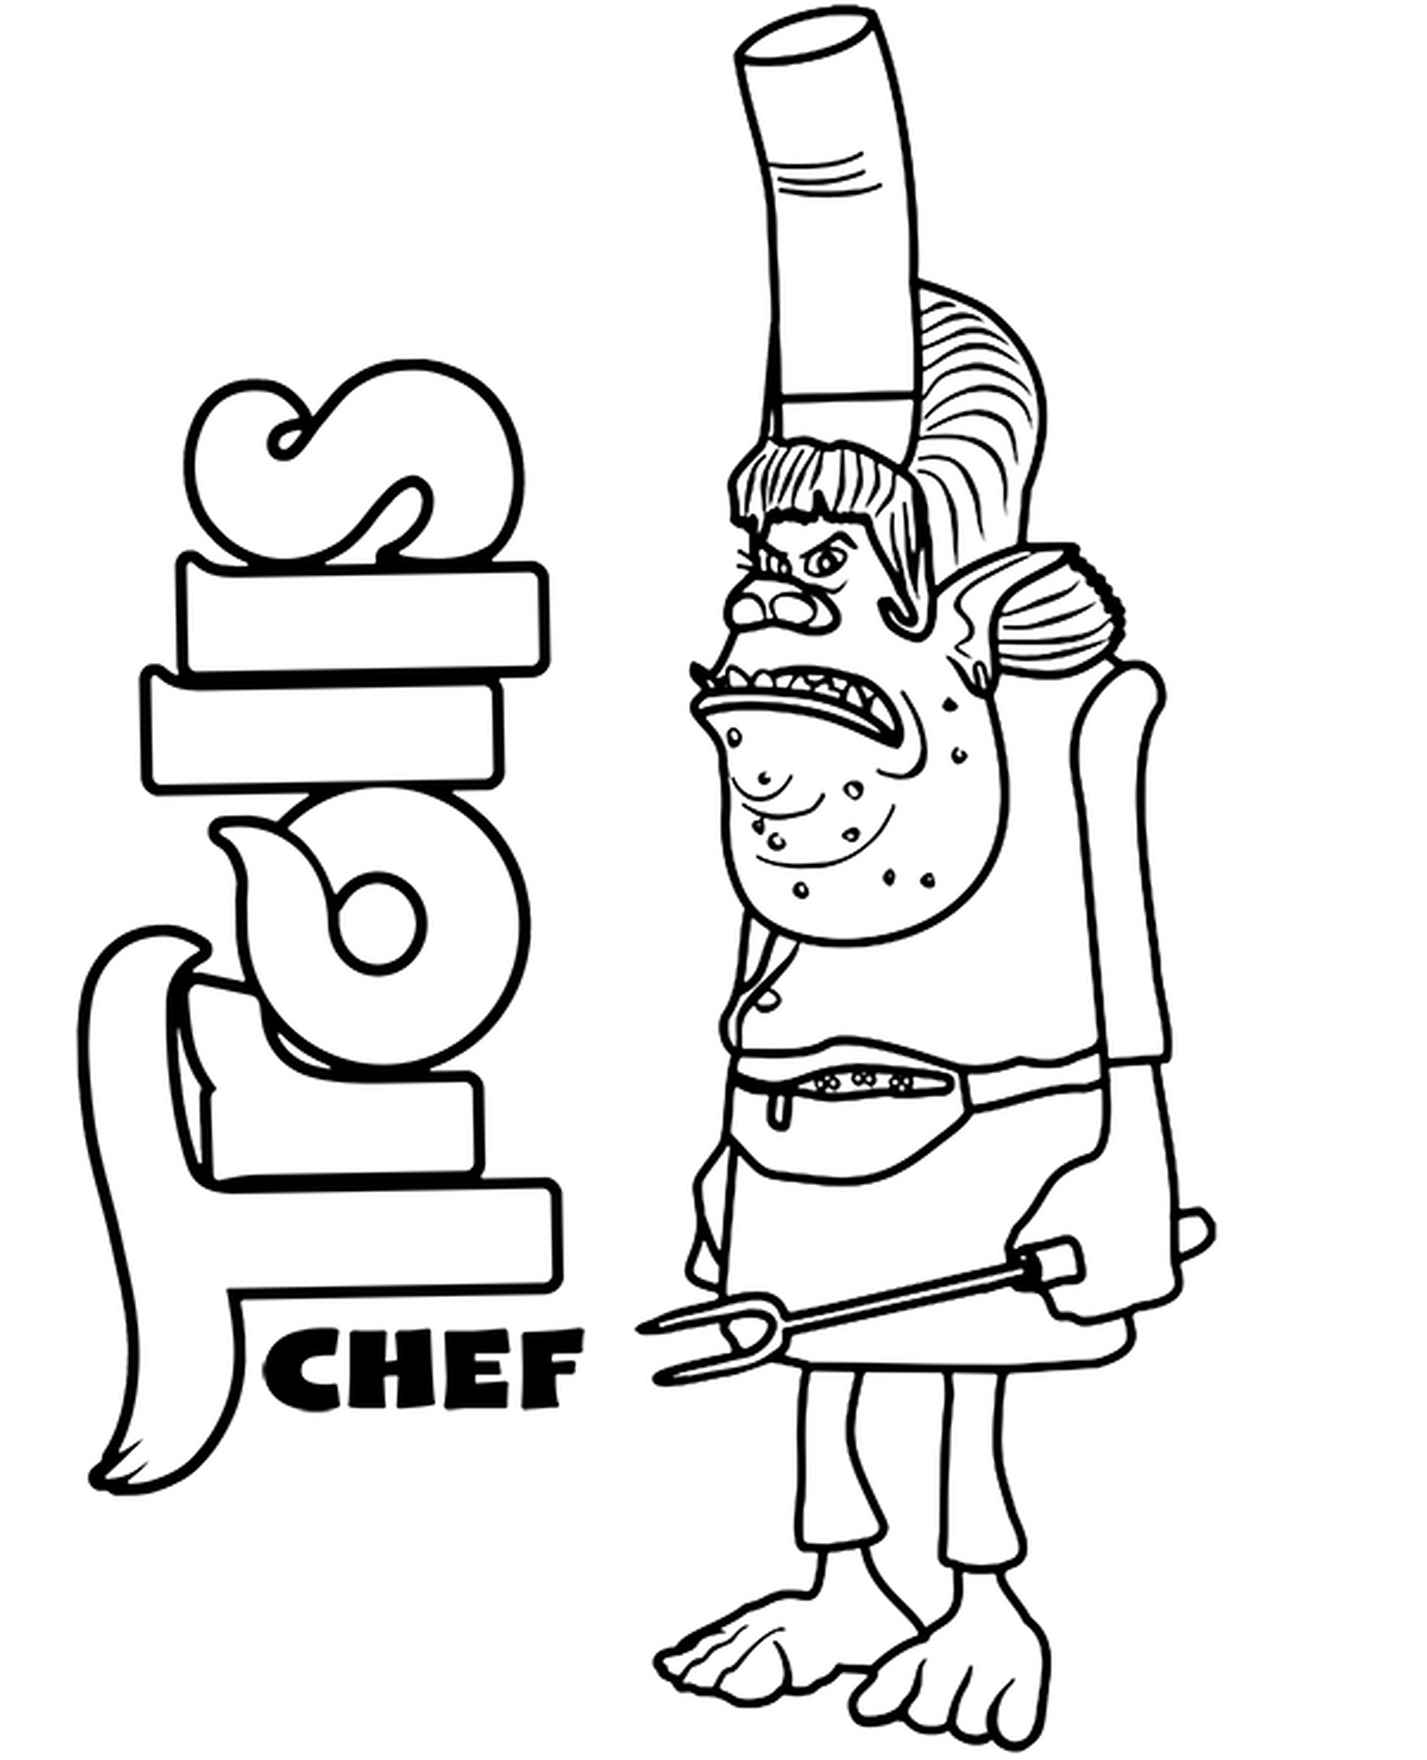 Chef Coloring Page Trolls